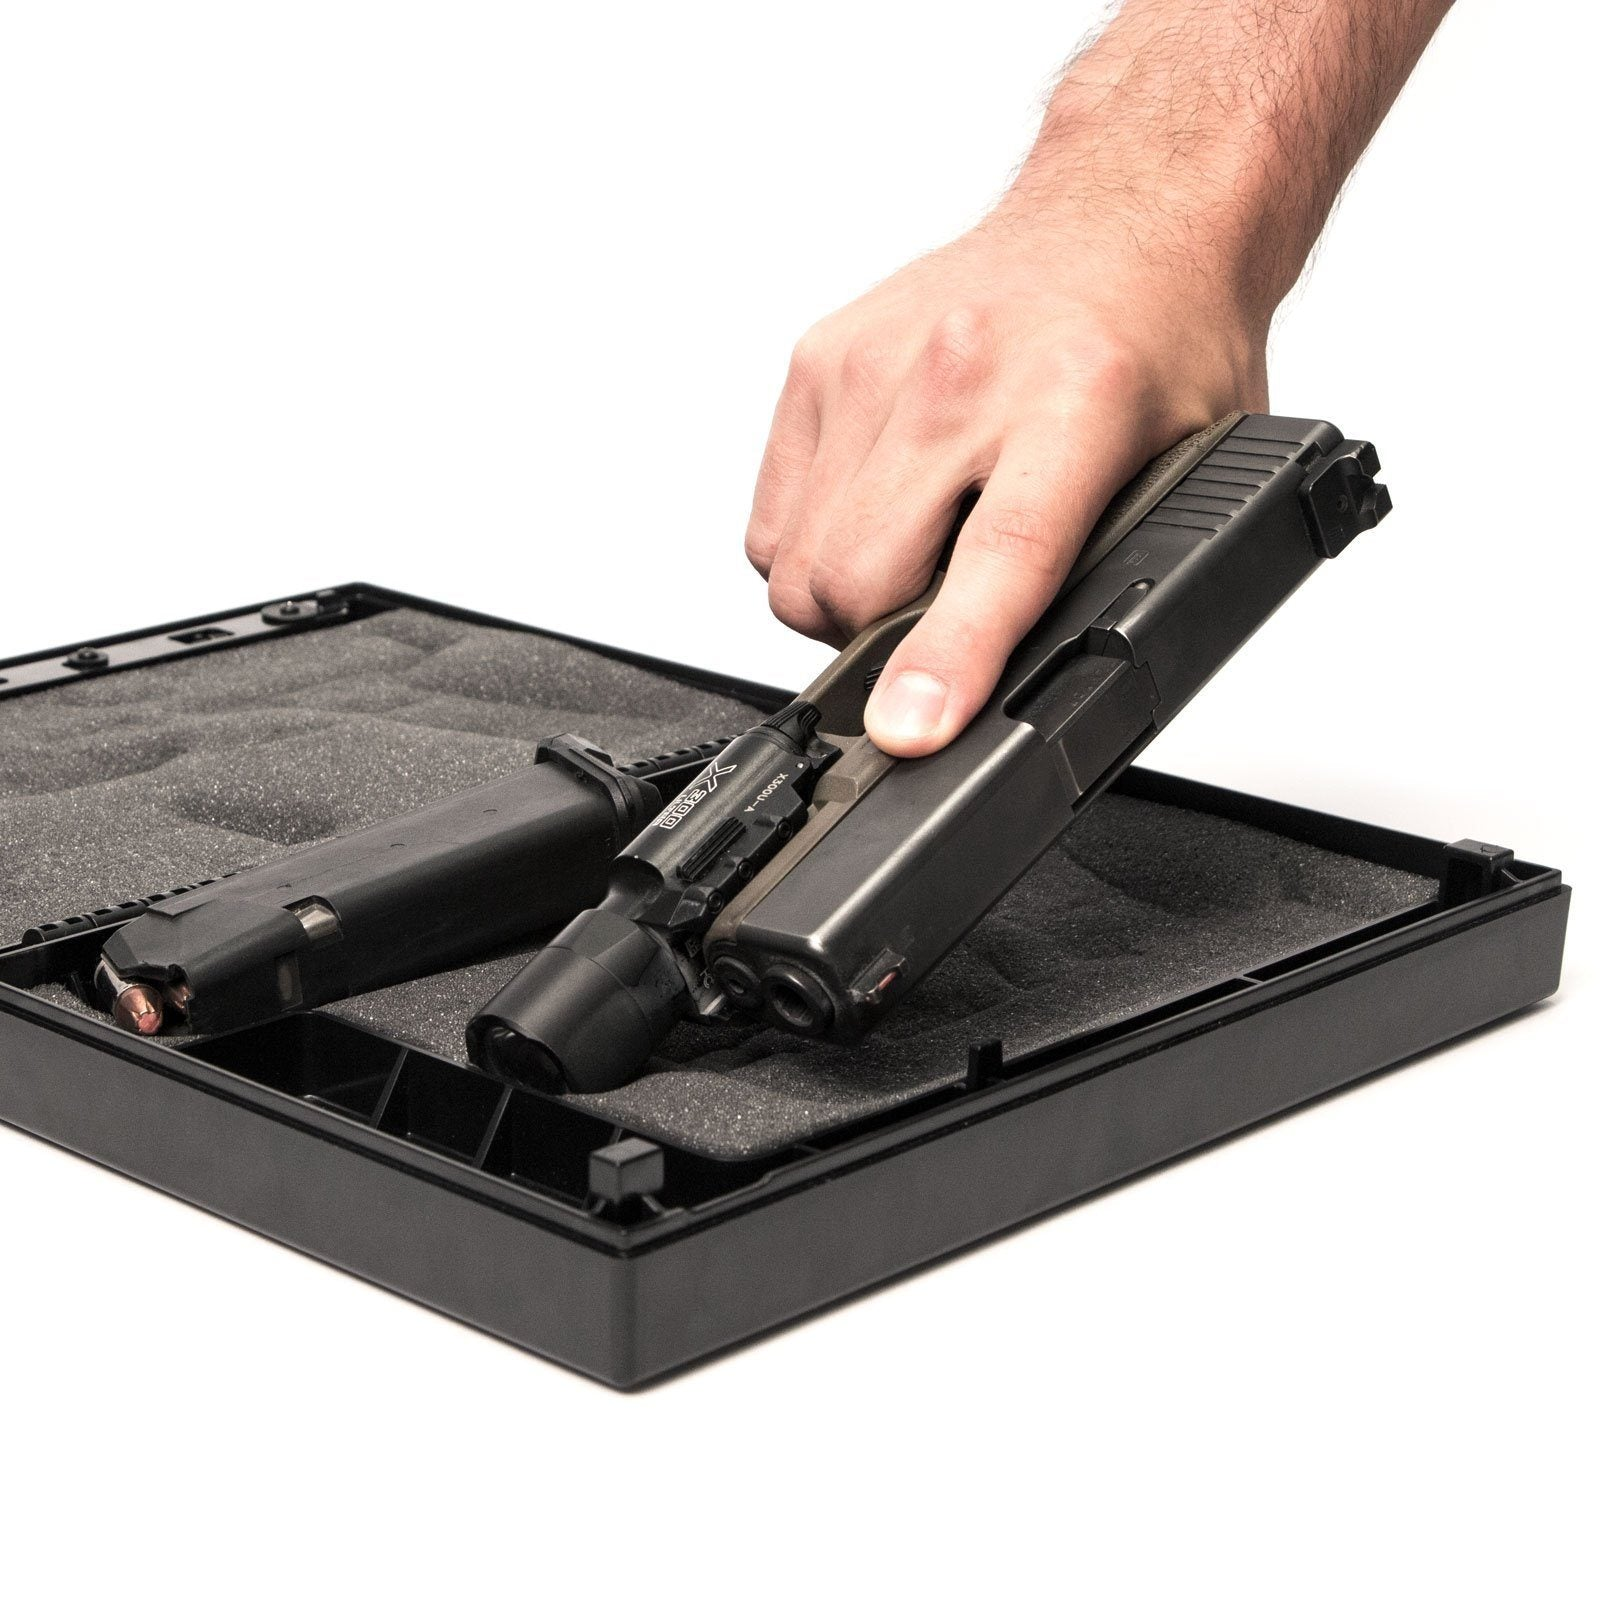 Handgun And Pistol Safes - Stopbox Portable Instant-Access Pistol Box